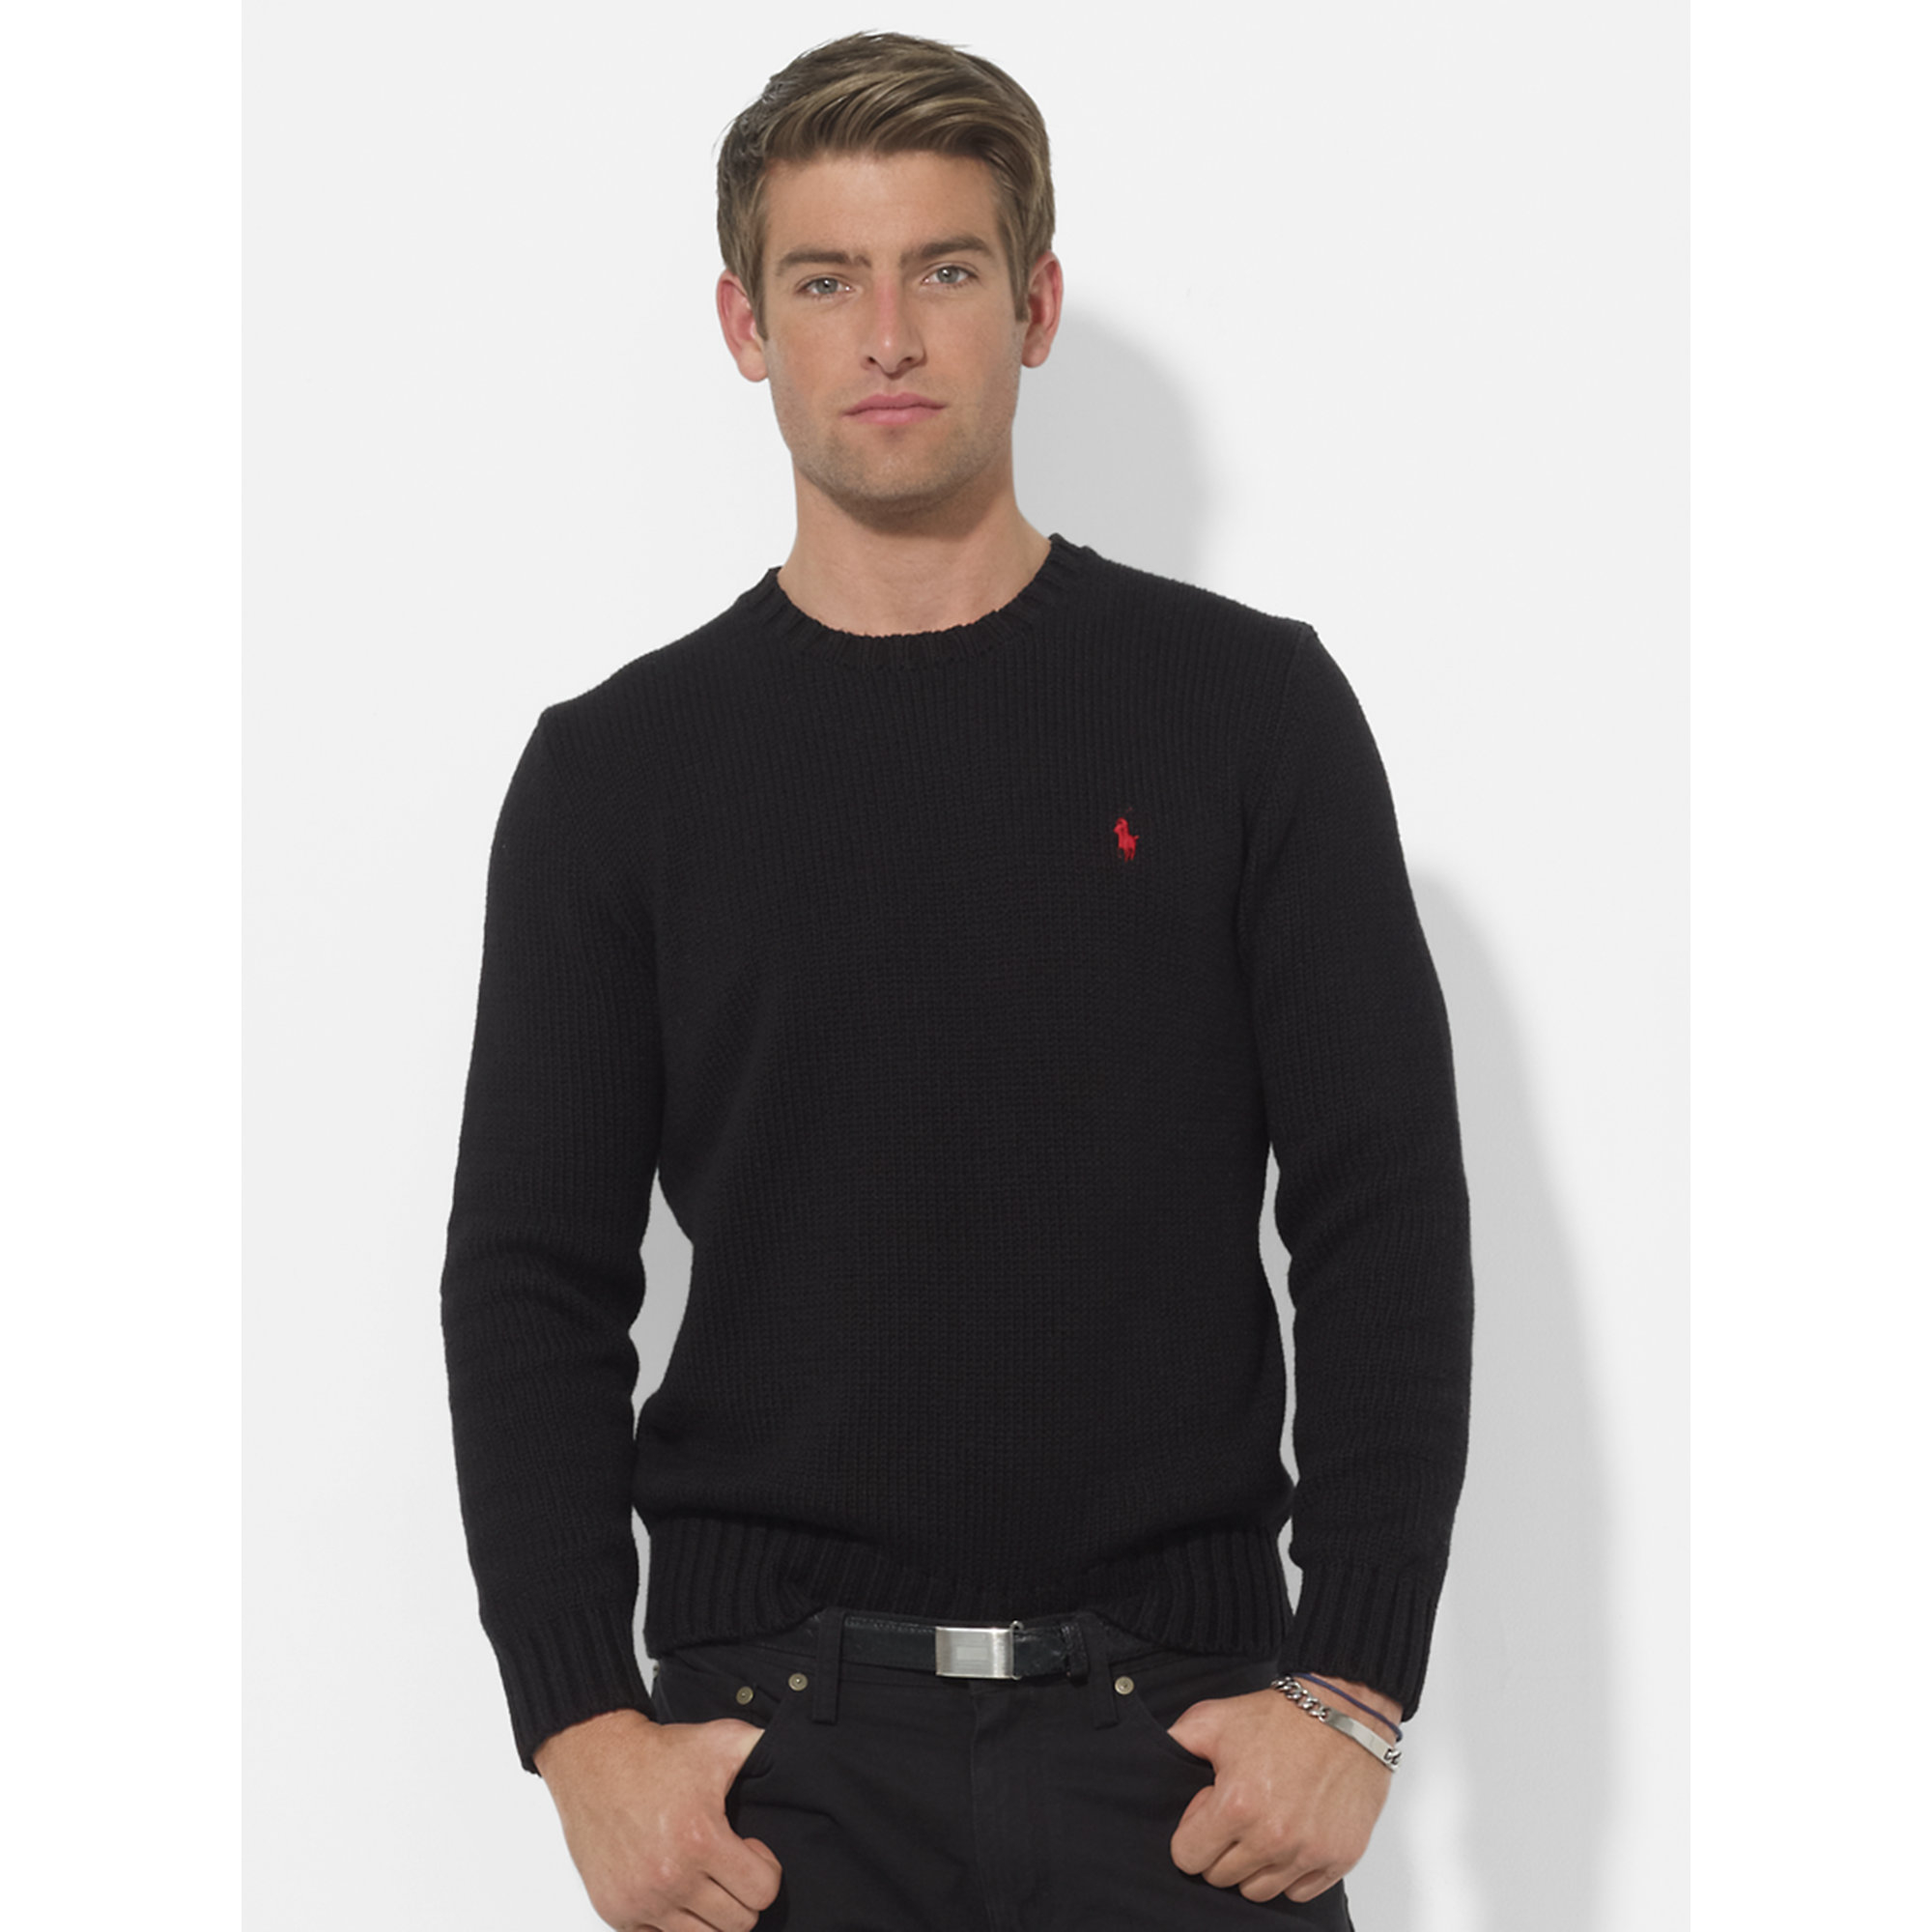 aaab910509a0 ... uk lyst polo ralph lauren cotton crewneck sweater in black for men  a8848 72f5e